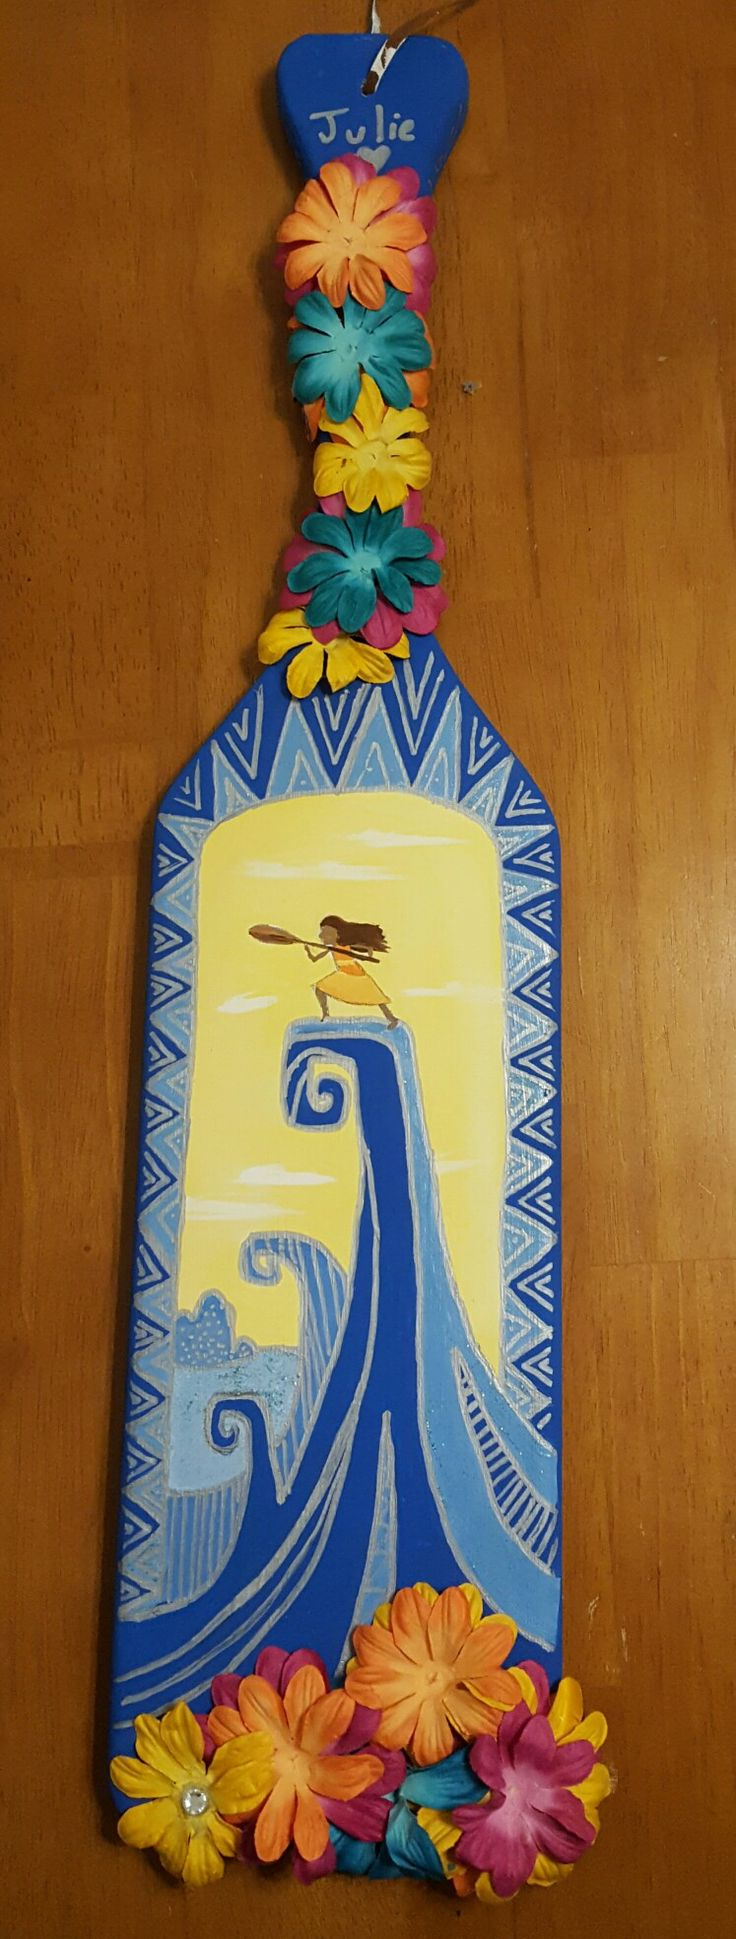 I'd love this as a paddle but with the flowers as the border and a simpler design in the middle so that we can still fit my name, my littles name, and Phi Sig on it and be able to read it!